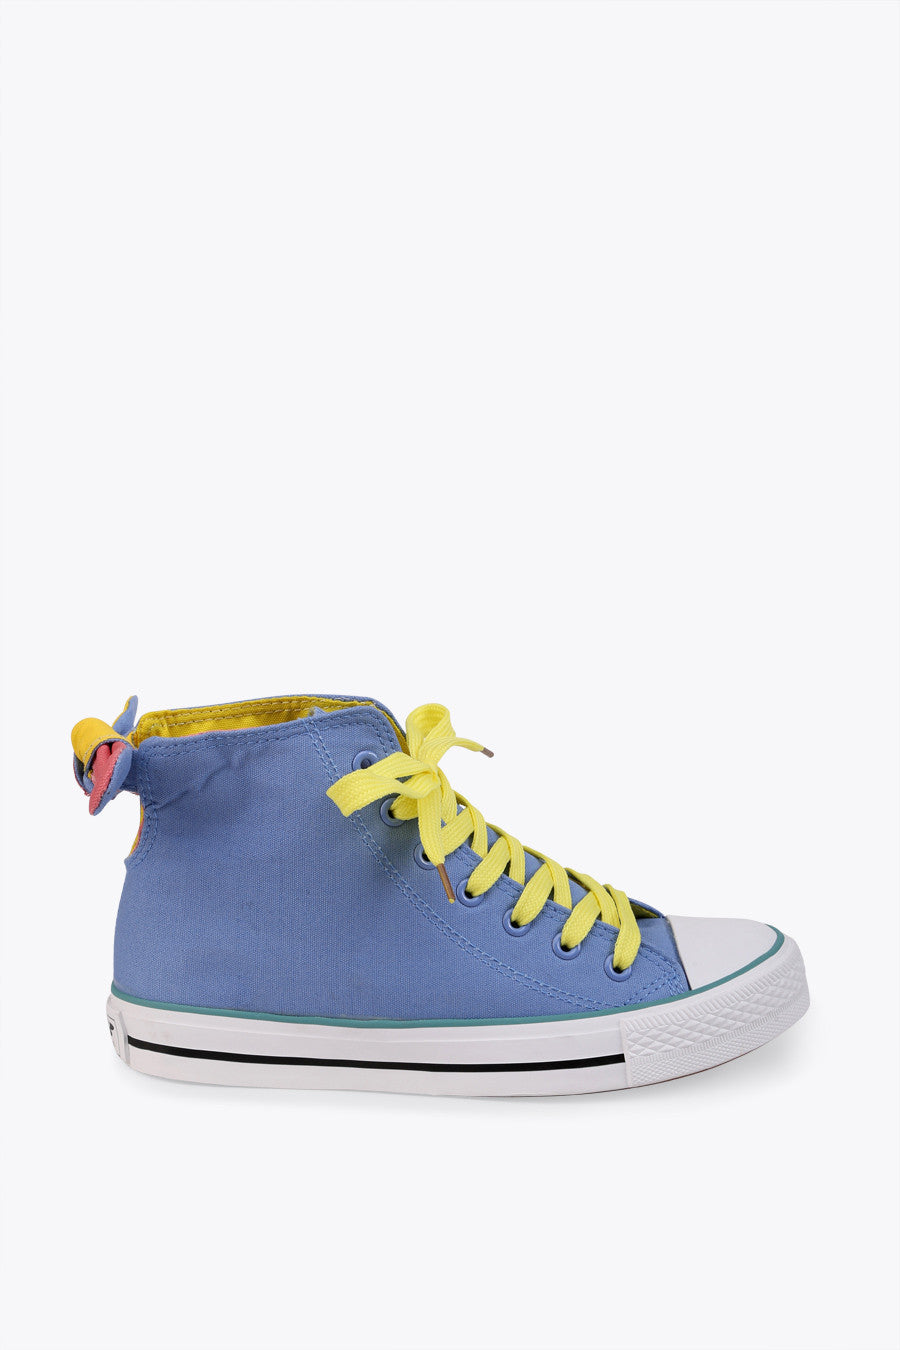 Sky Blue Bow Sneakers